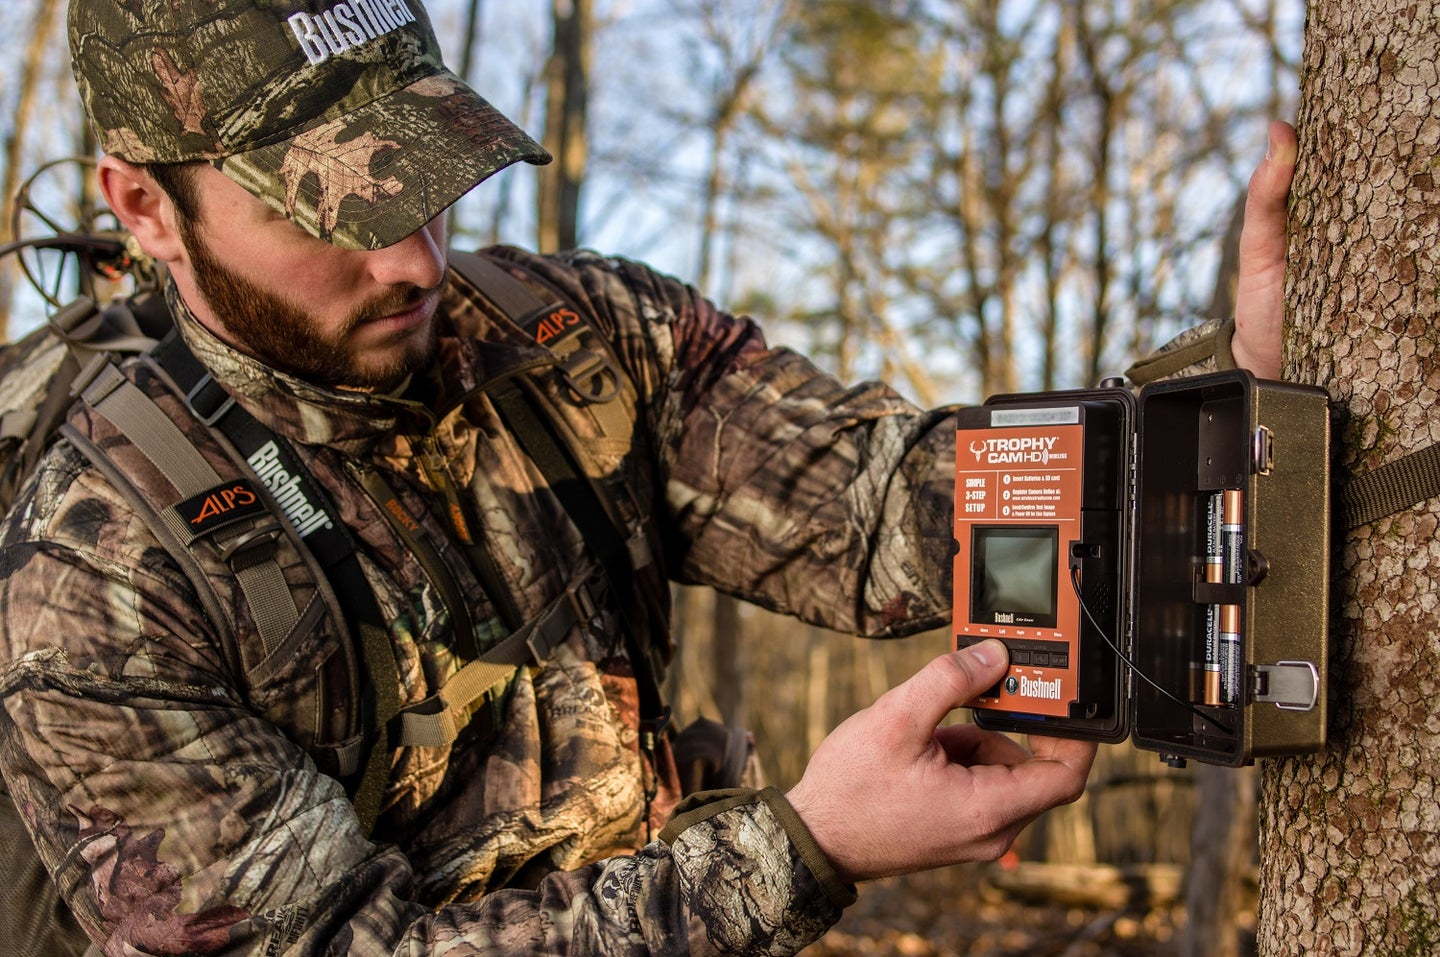 A deer hunter shows where to mount a trail camera